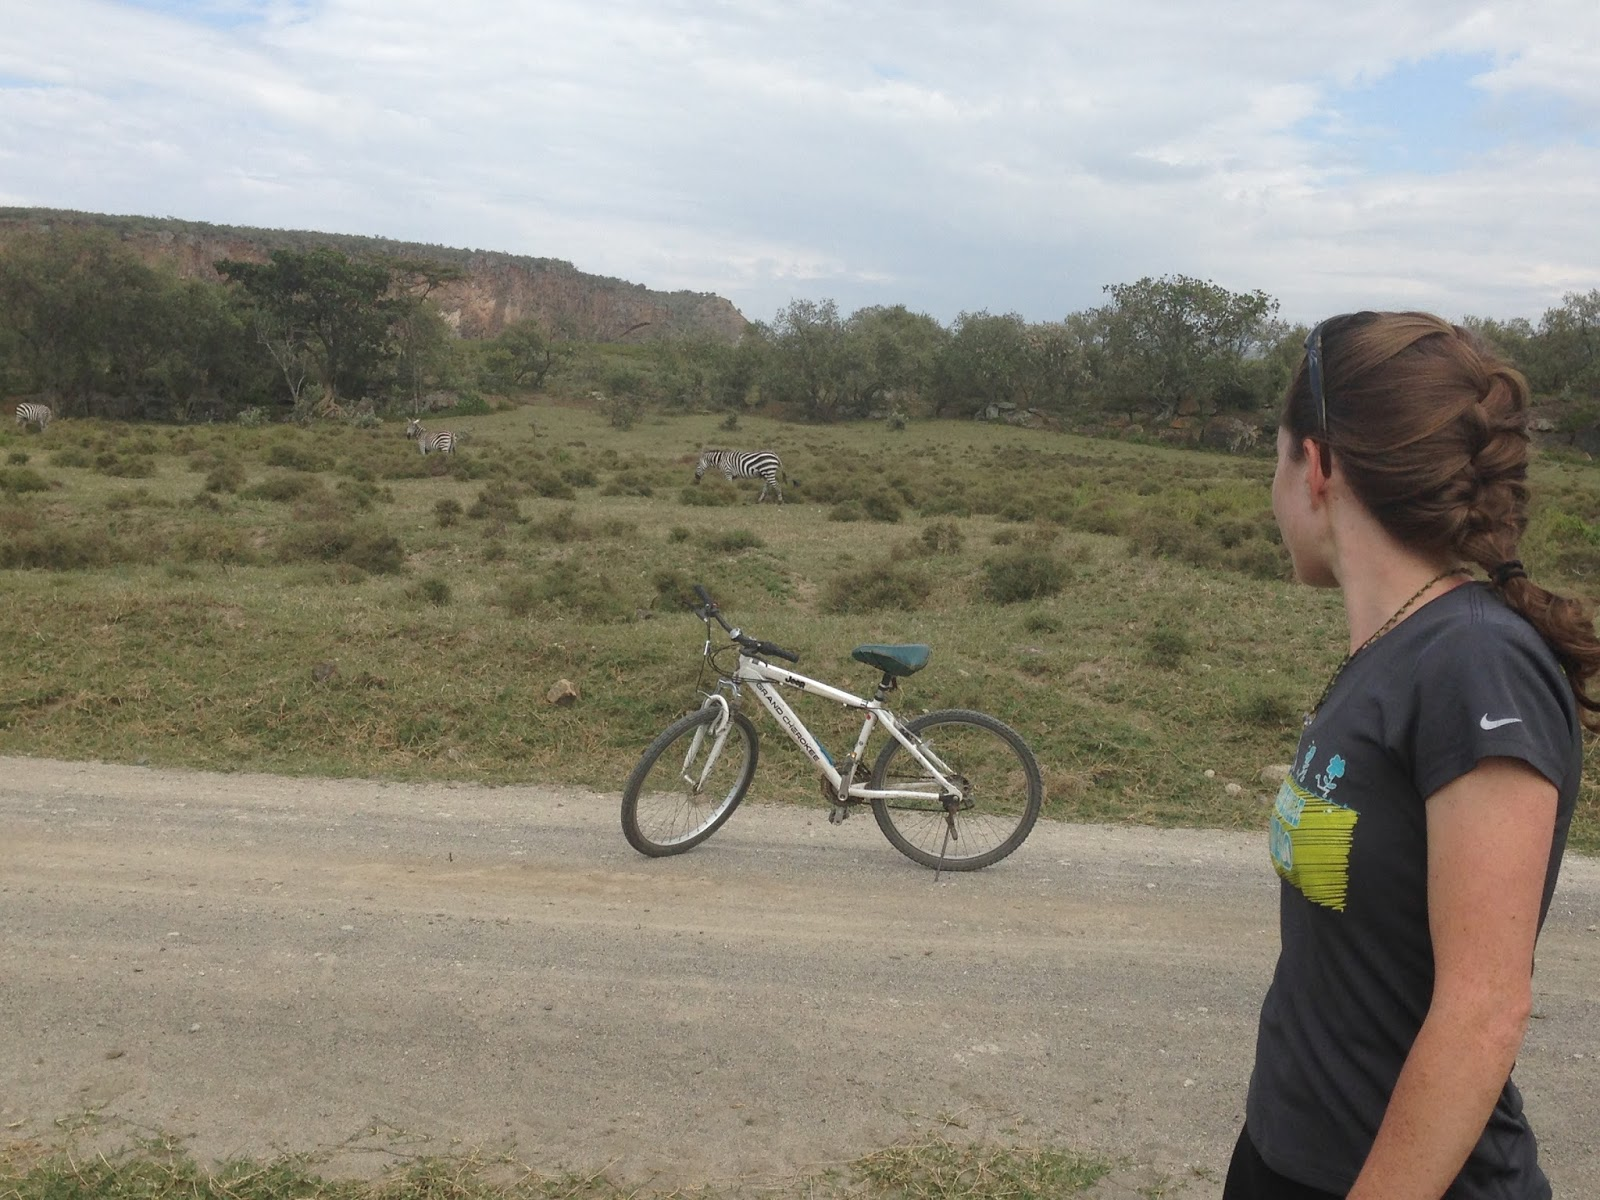 for a safari on bike  African Bush Elephant Next To Person